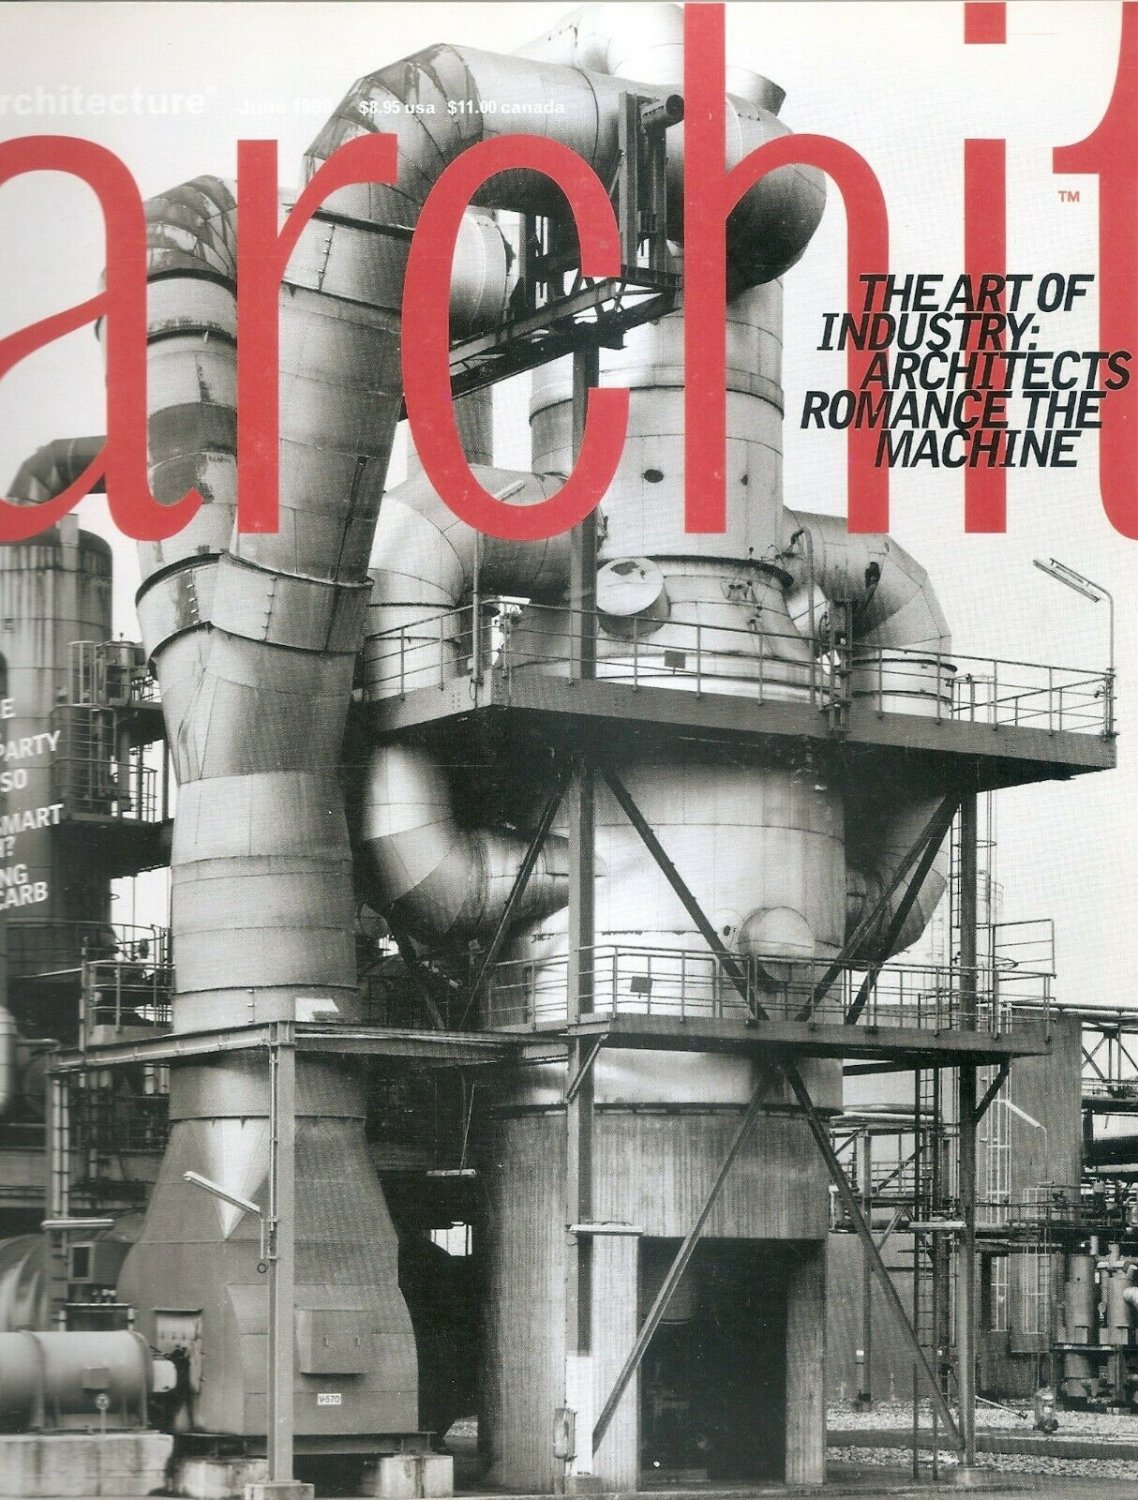 ARCHITECTURE MAGAZINE June 1999 Sheffield Museum, Metal House, Factory, Industry